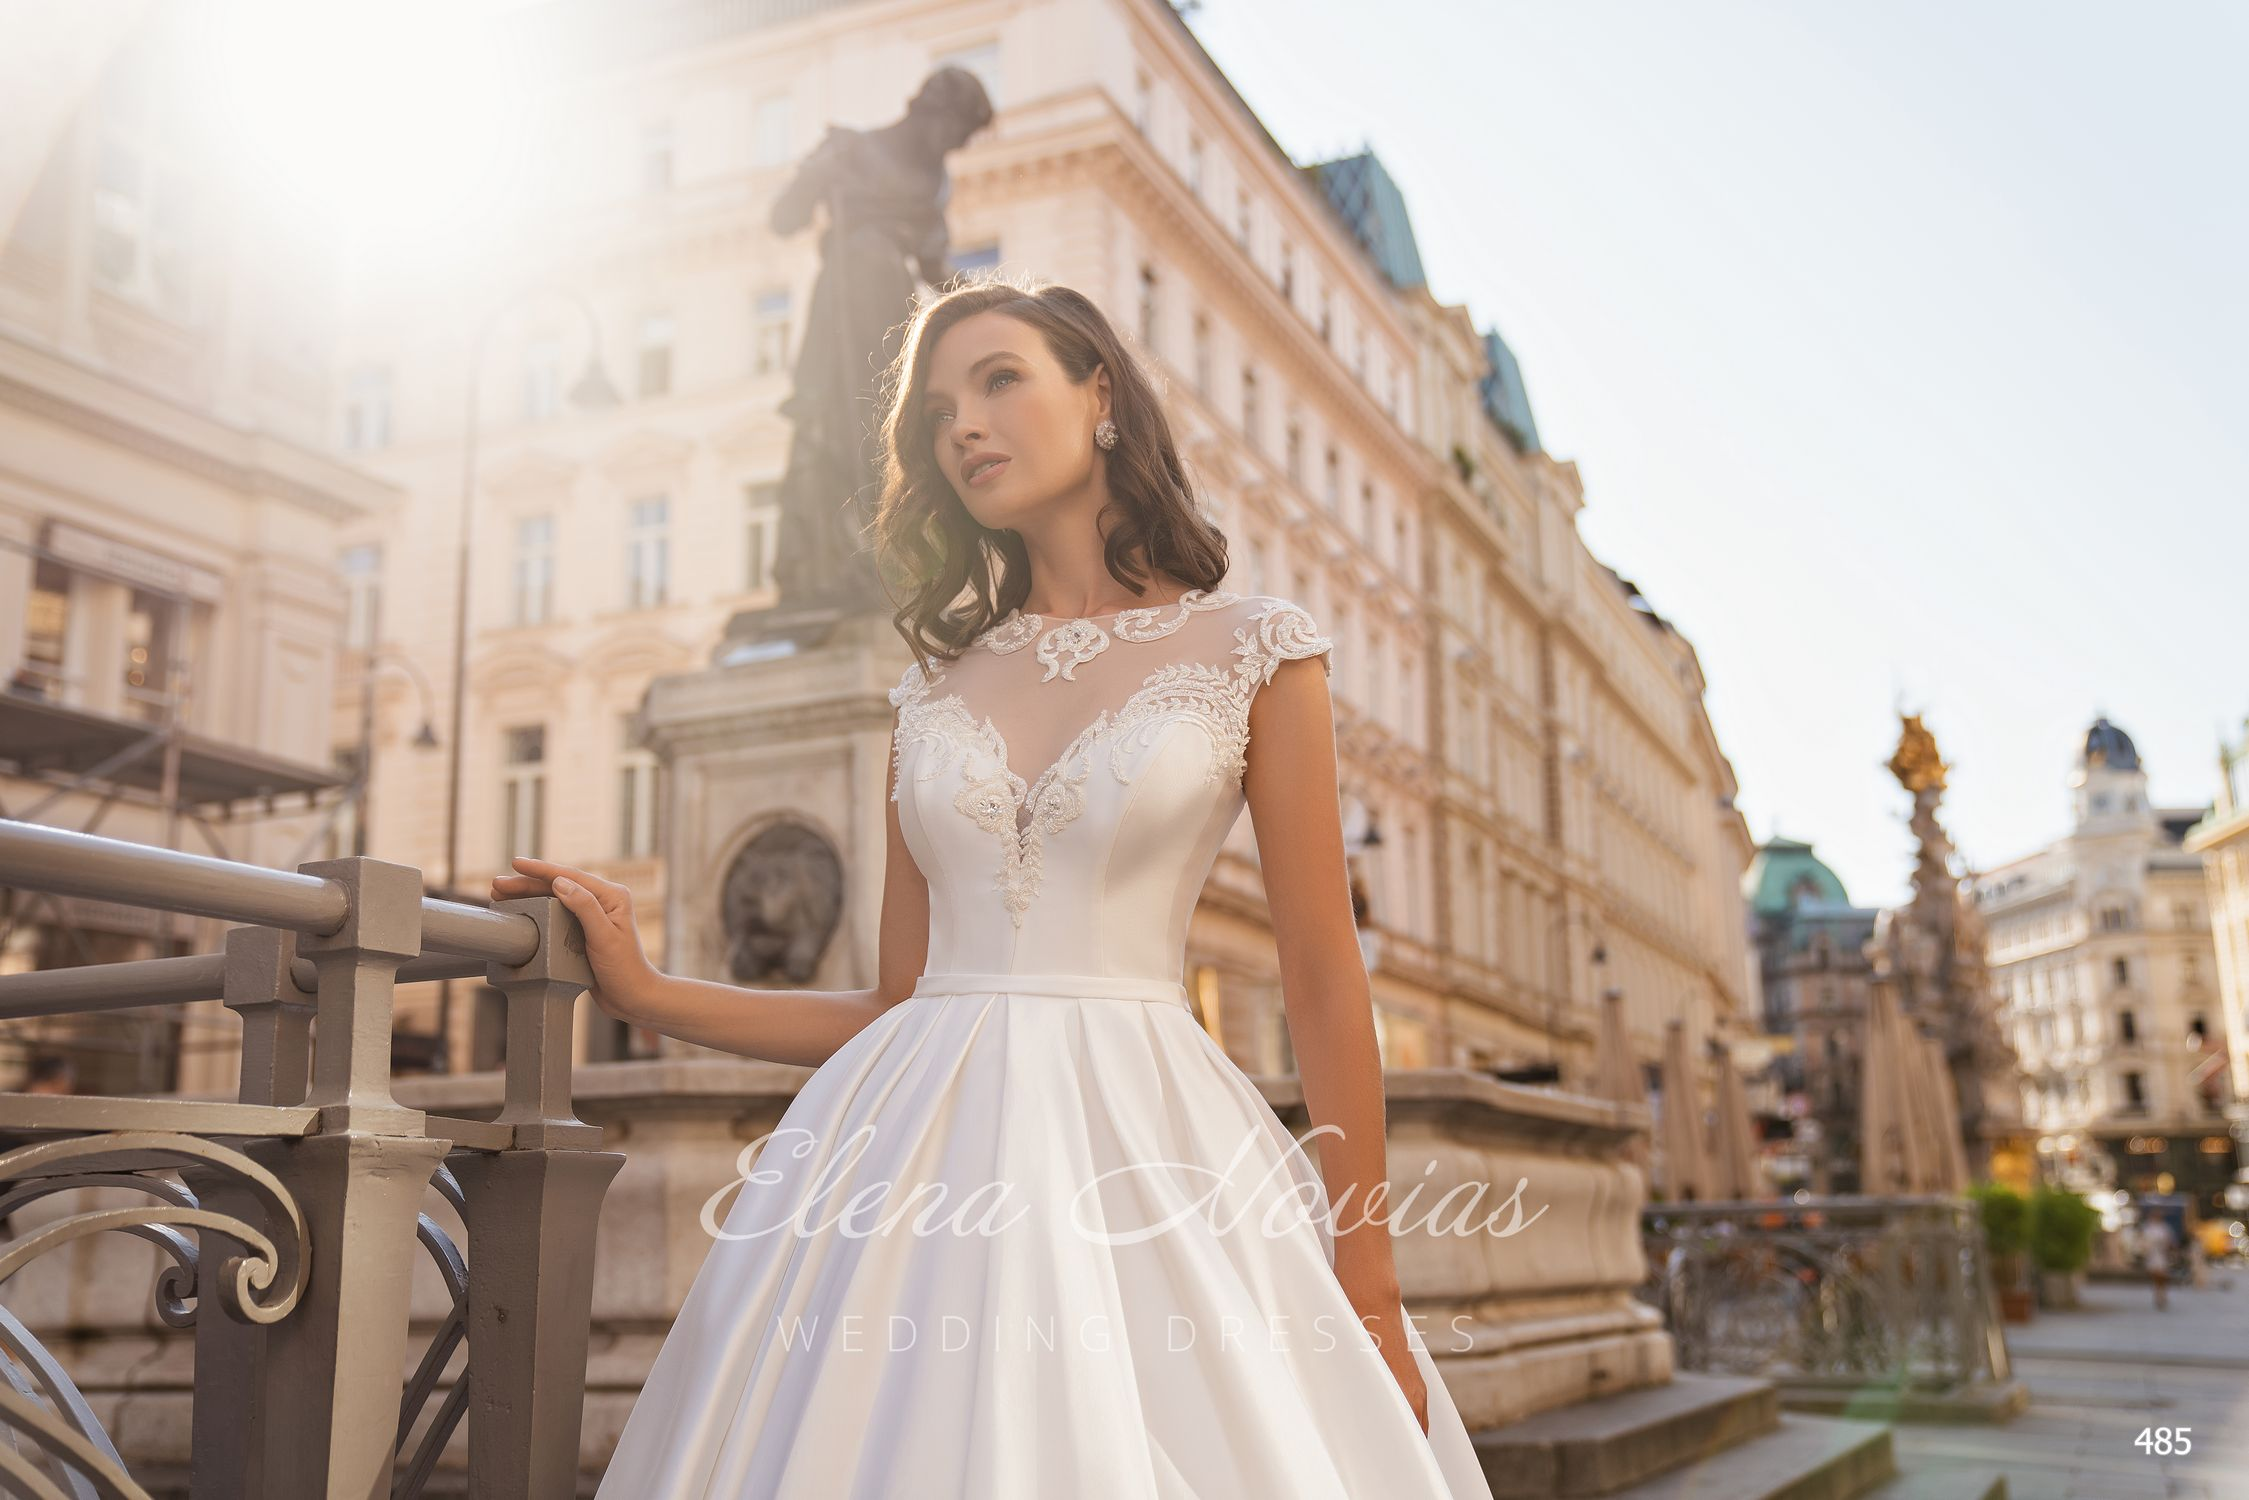 Wedding dresses 485 1